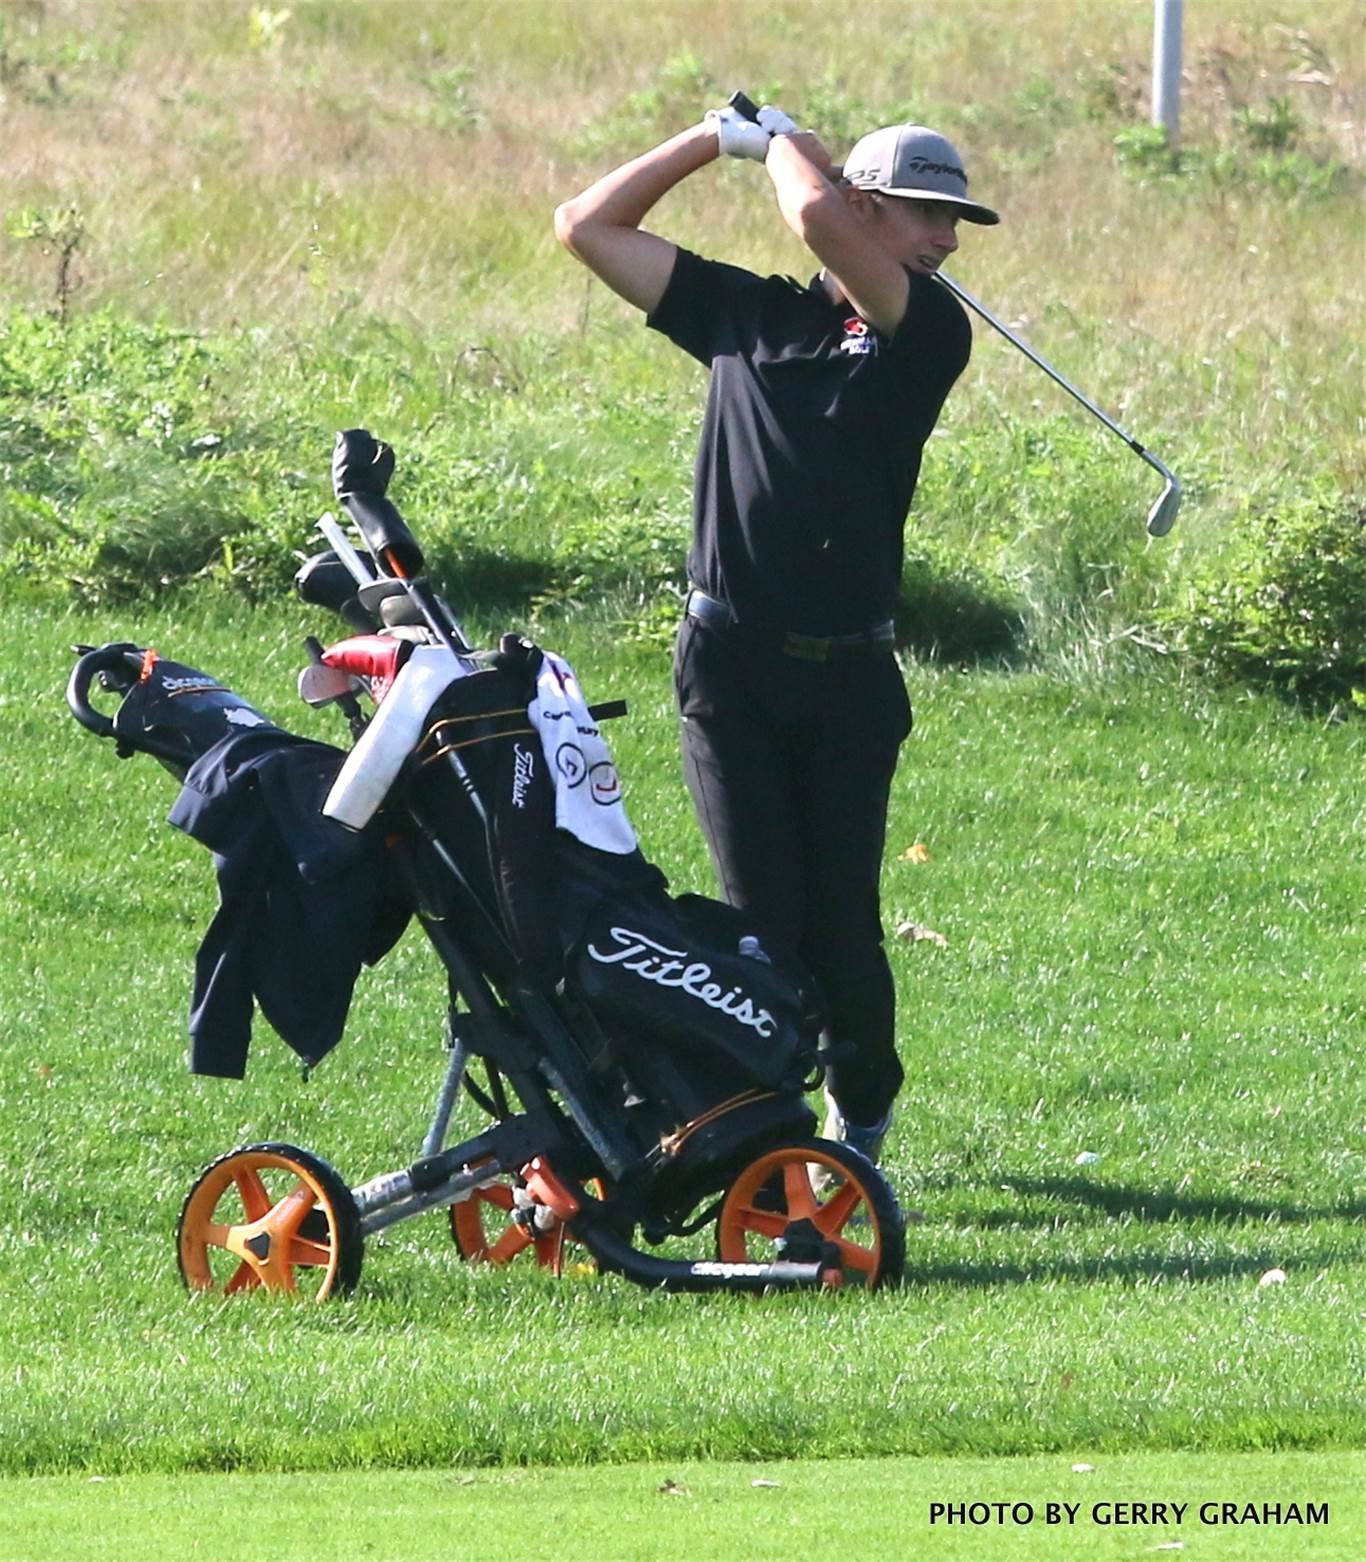 Also competing at the GHAC golf tournament was Alex McGee from Cardinal Newman. Photo by Gerry Graham.